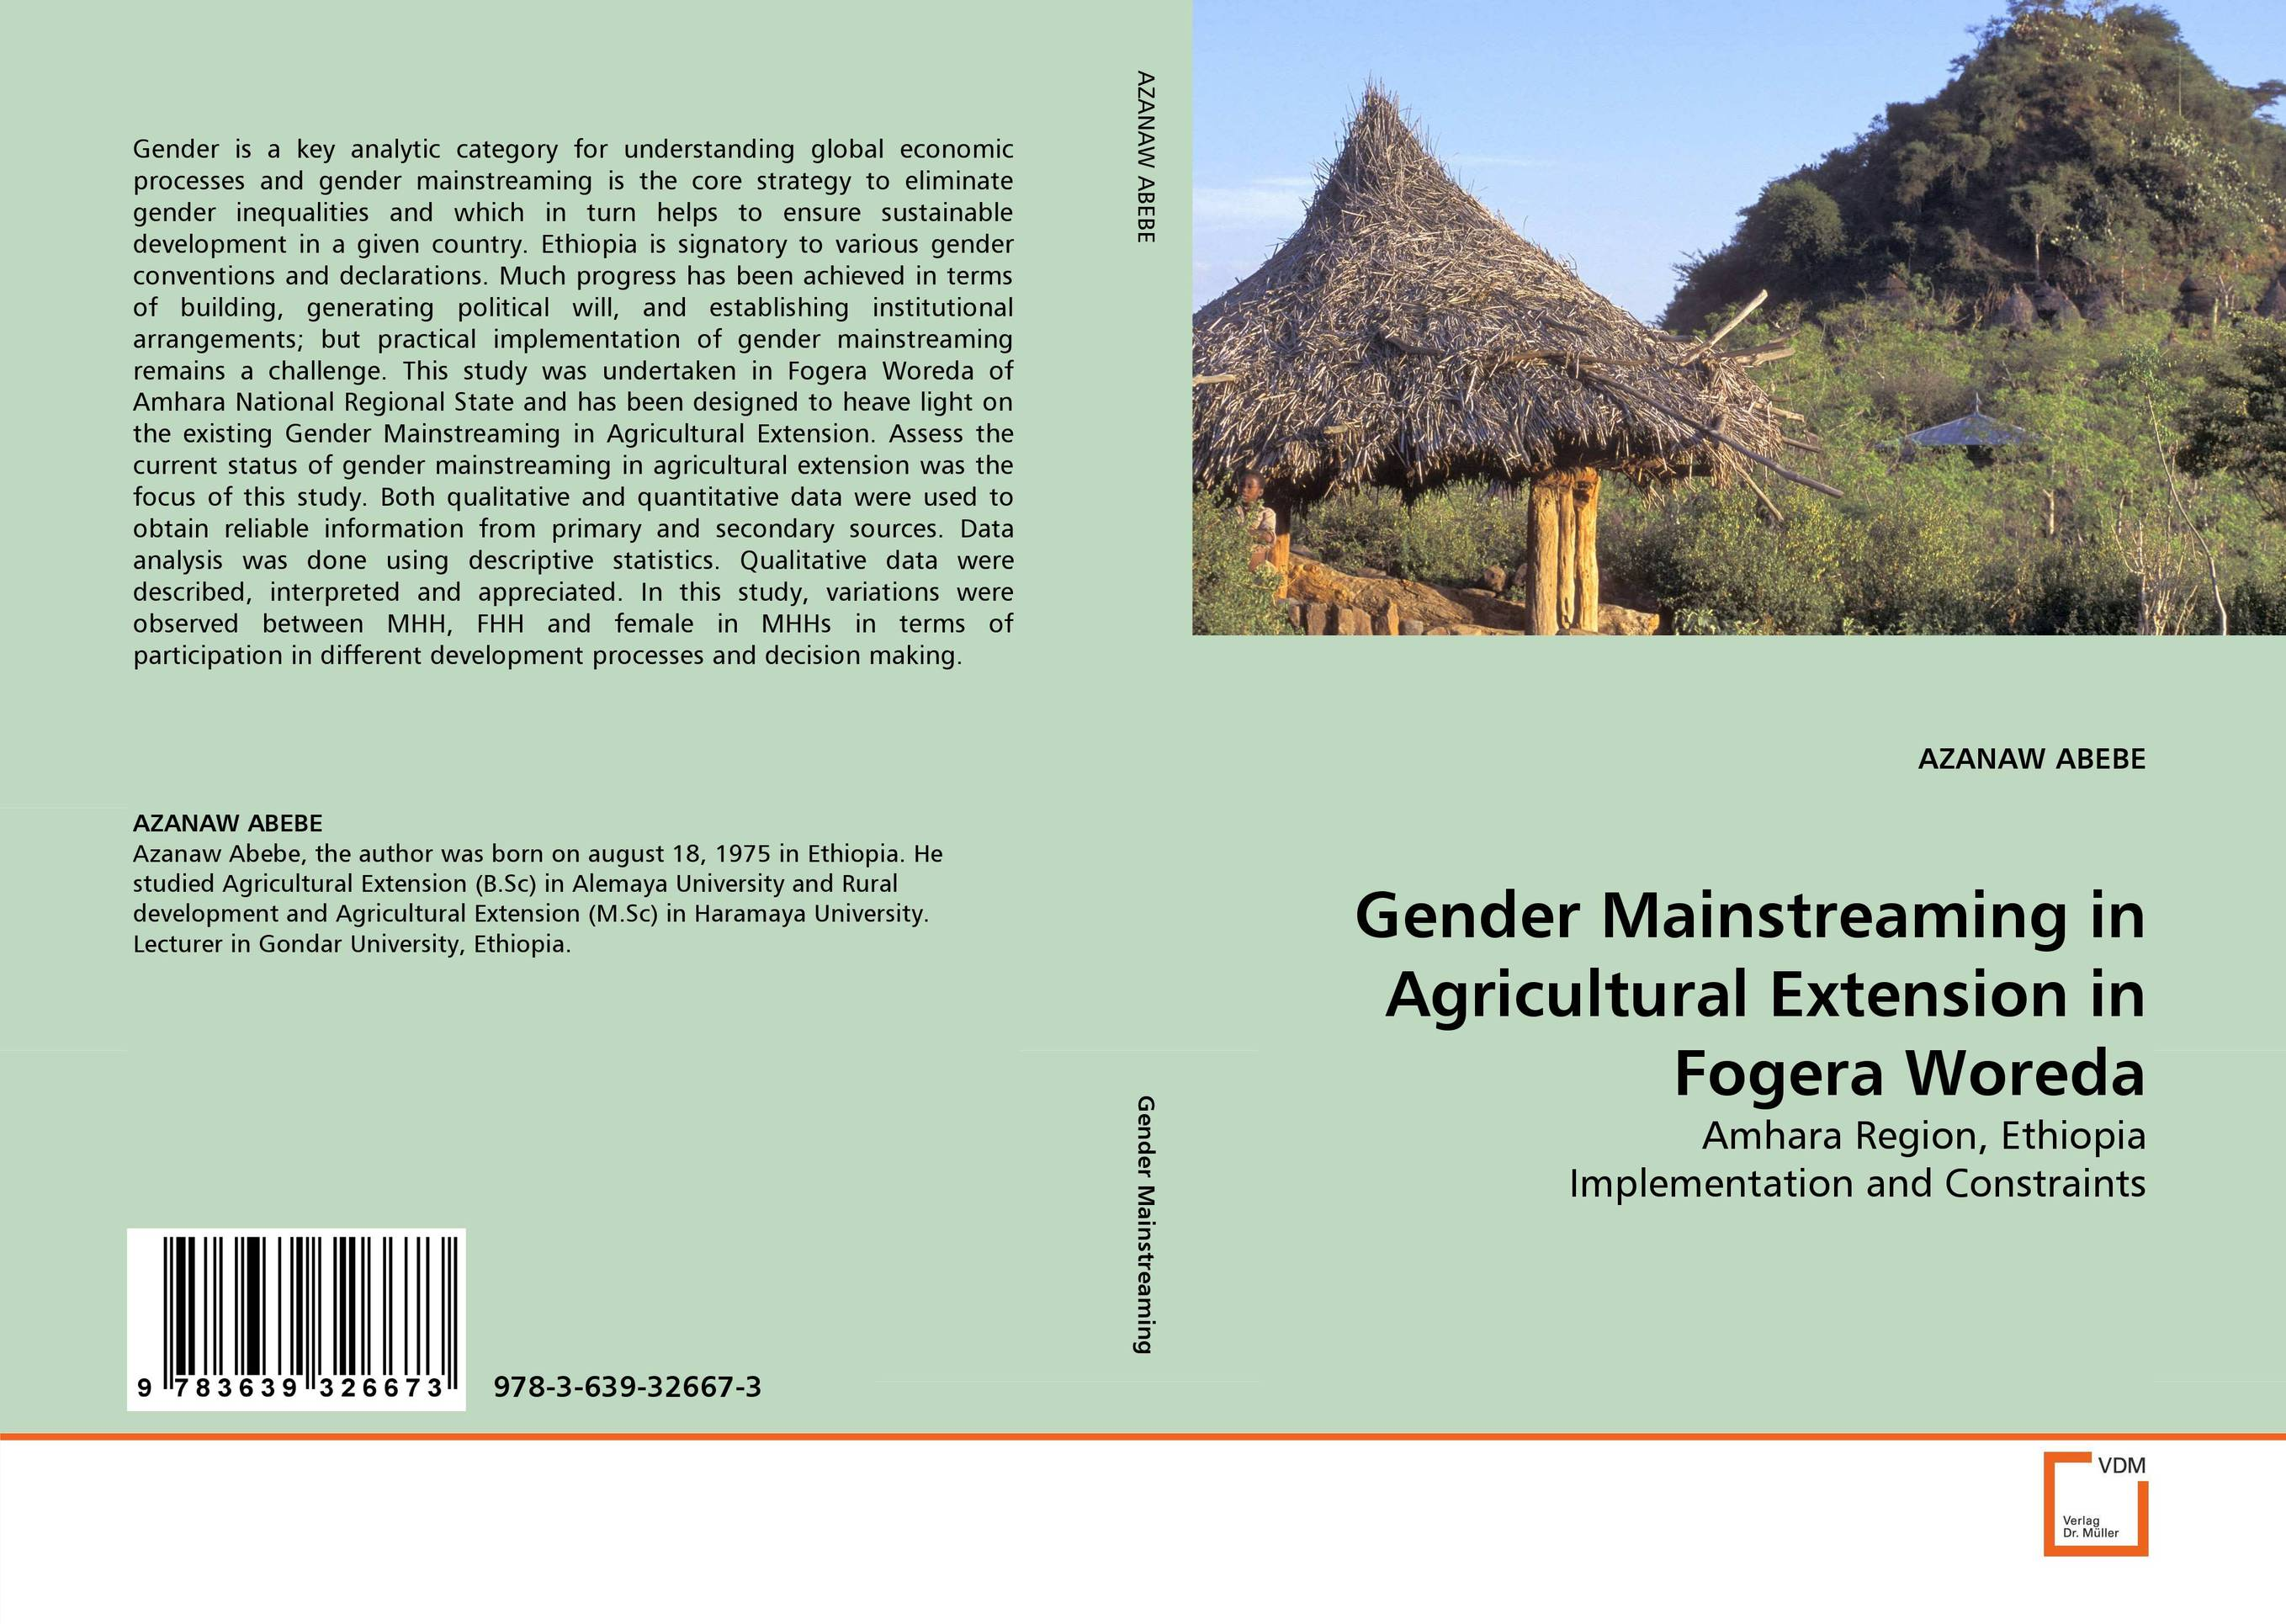 Gender Mainstreaming in Agricultural Extension in Fogera Woreda